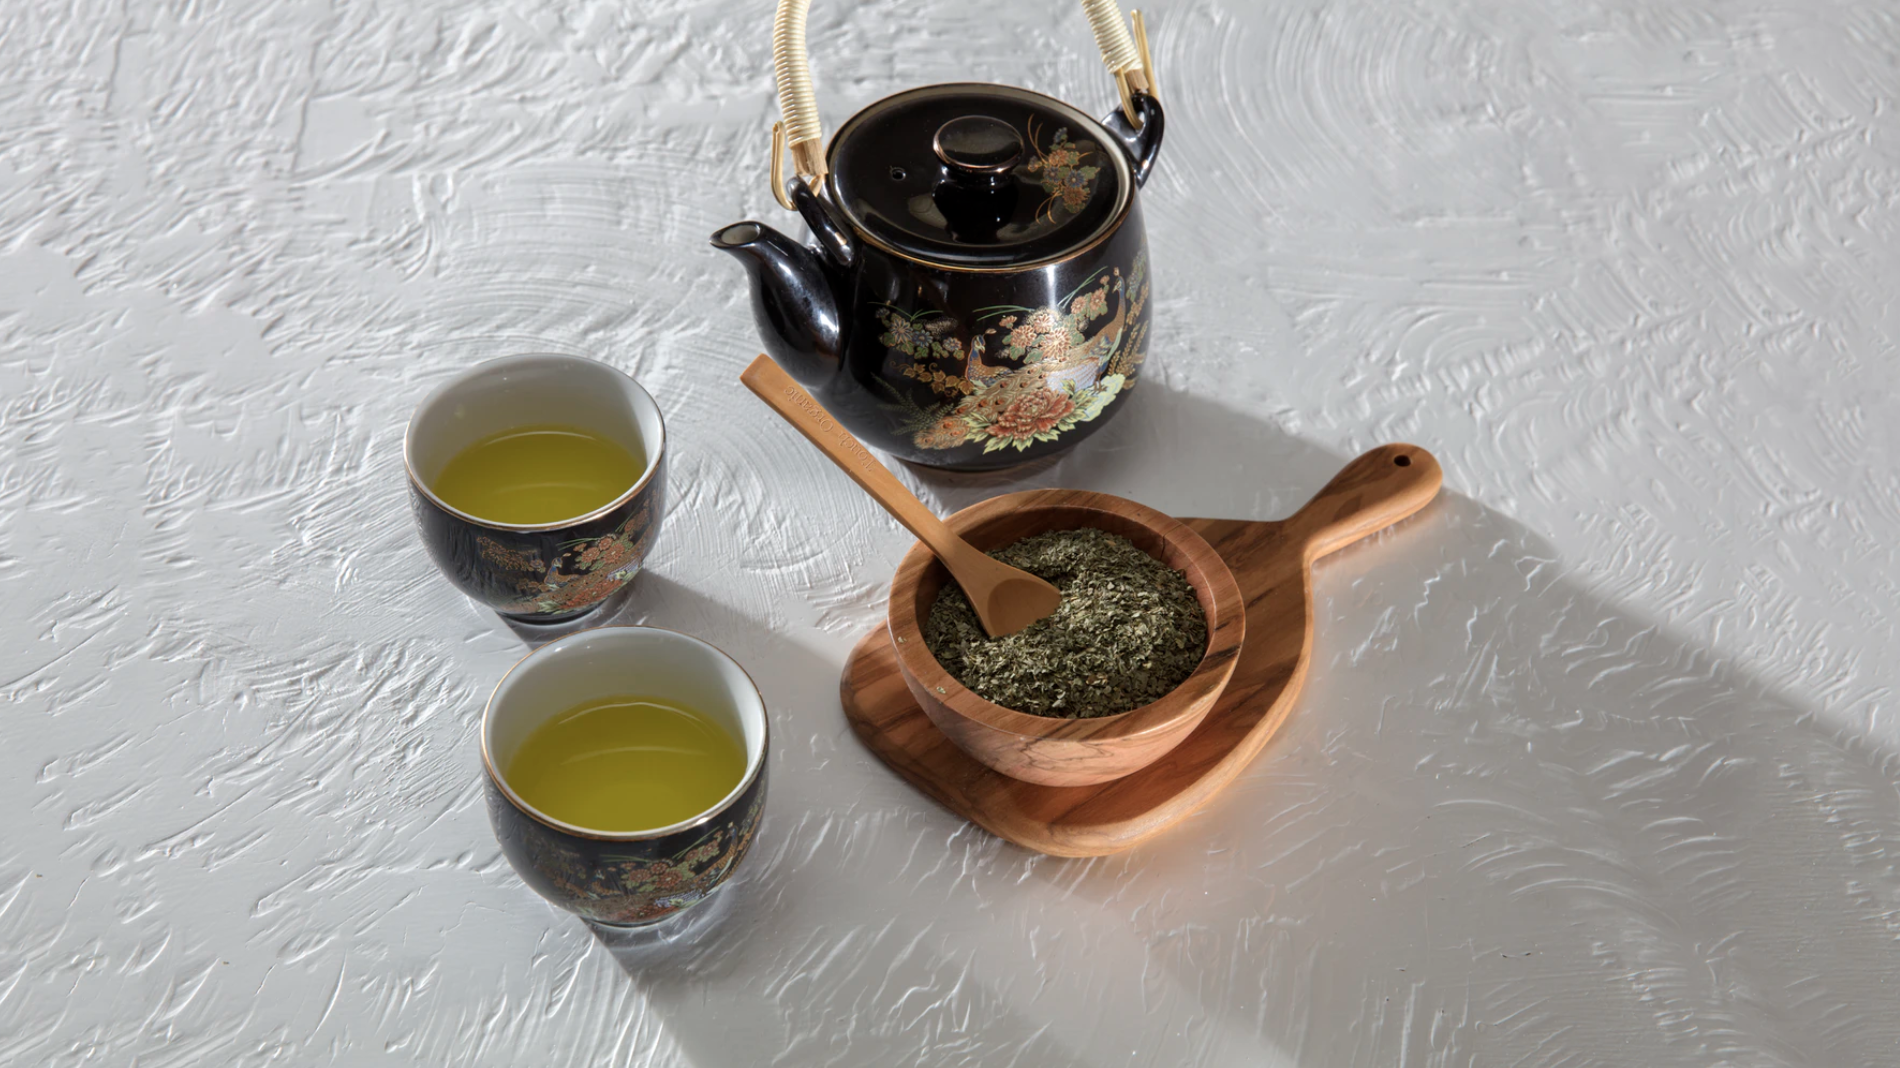 A compound found in green tea could be key to tackling tuberculosis. Photo courtesy: unsplash